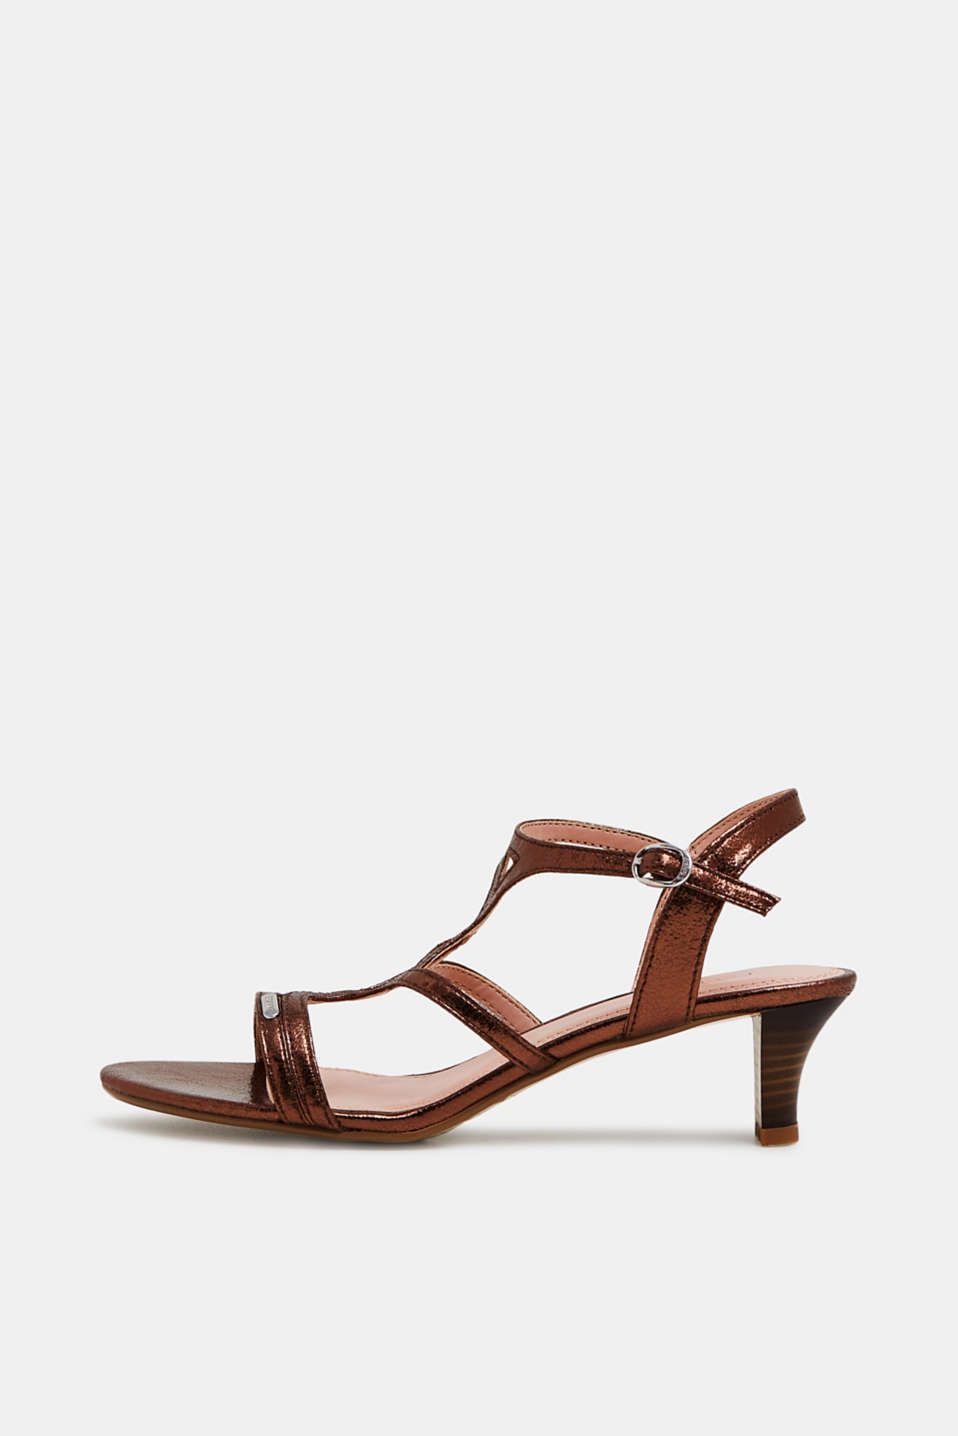 Esprit - Metallic sandals in crumpled faux leather